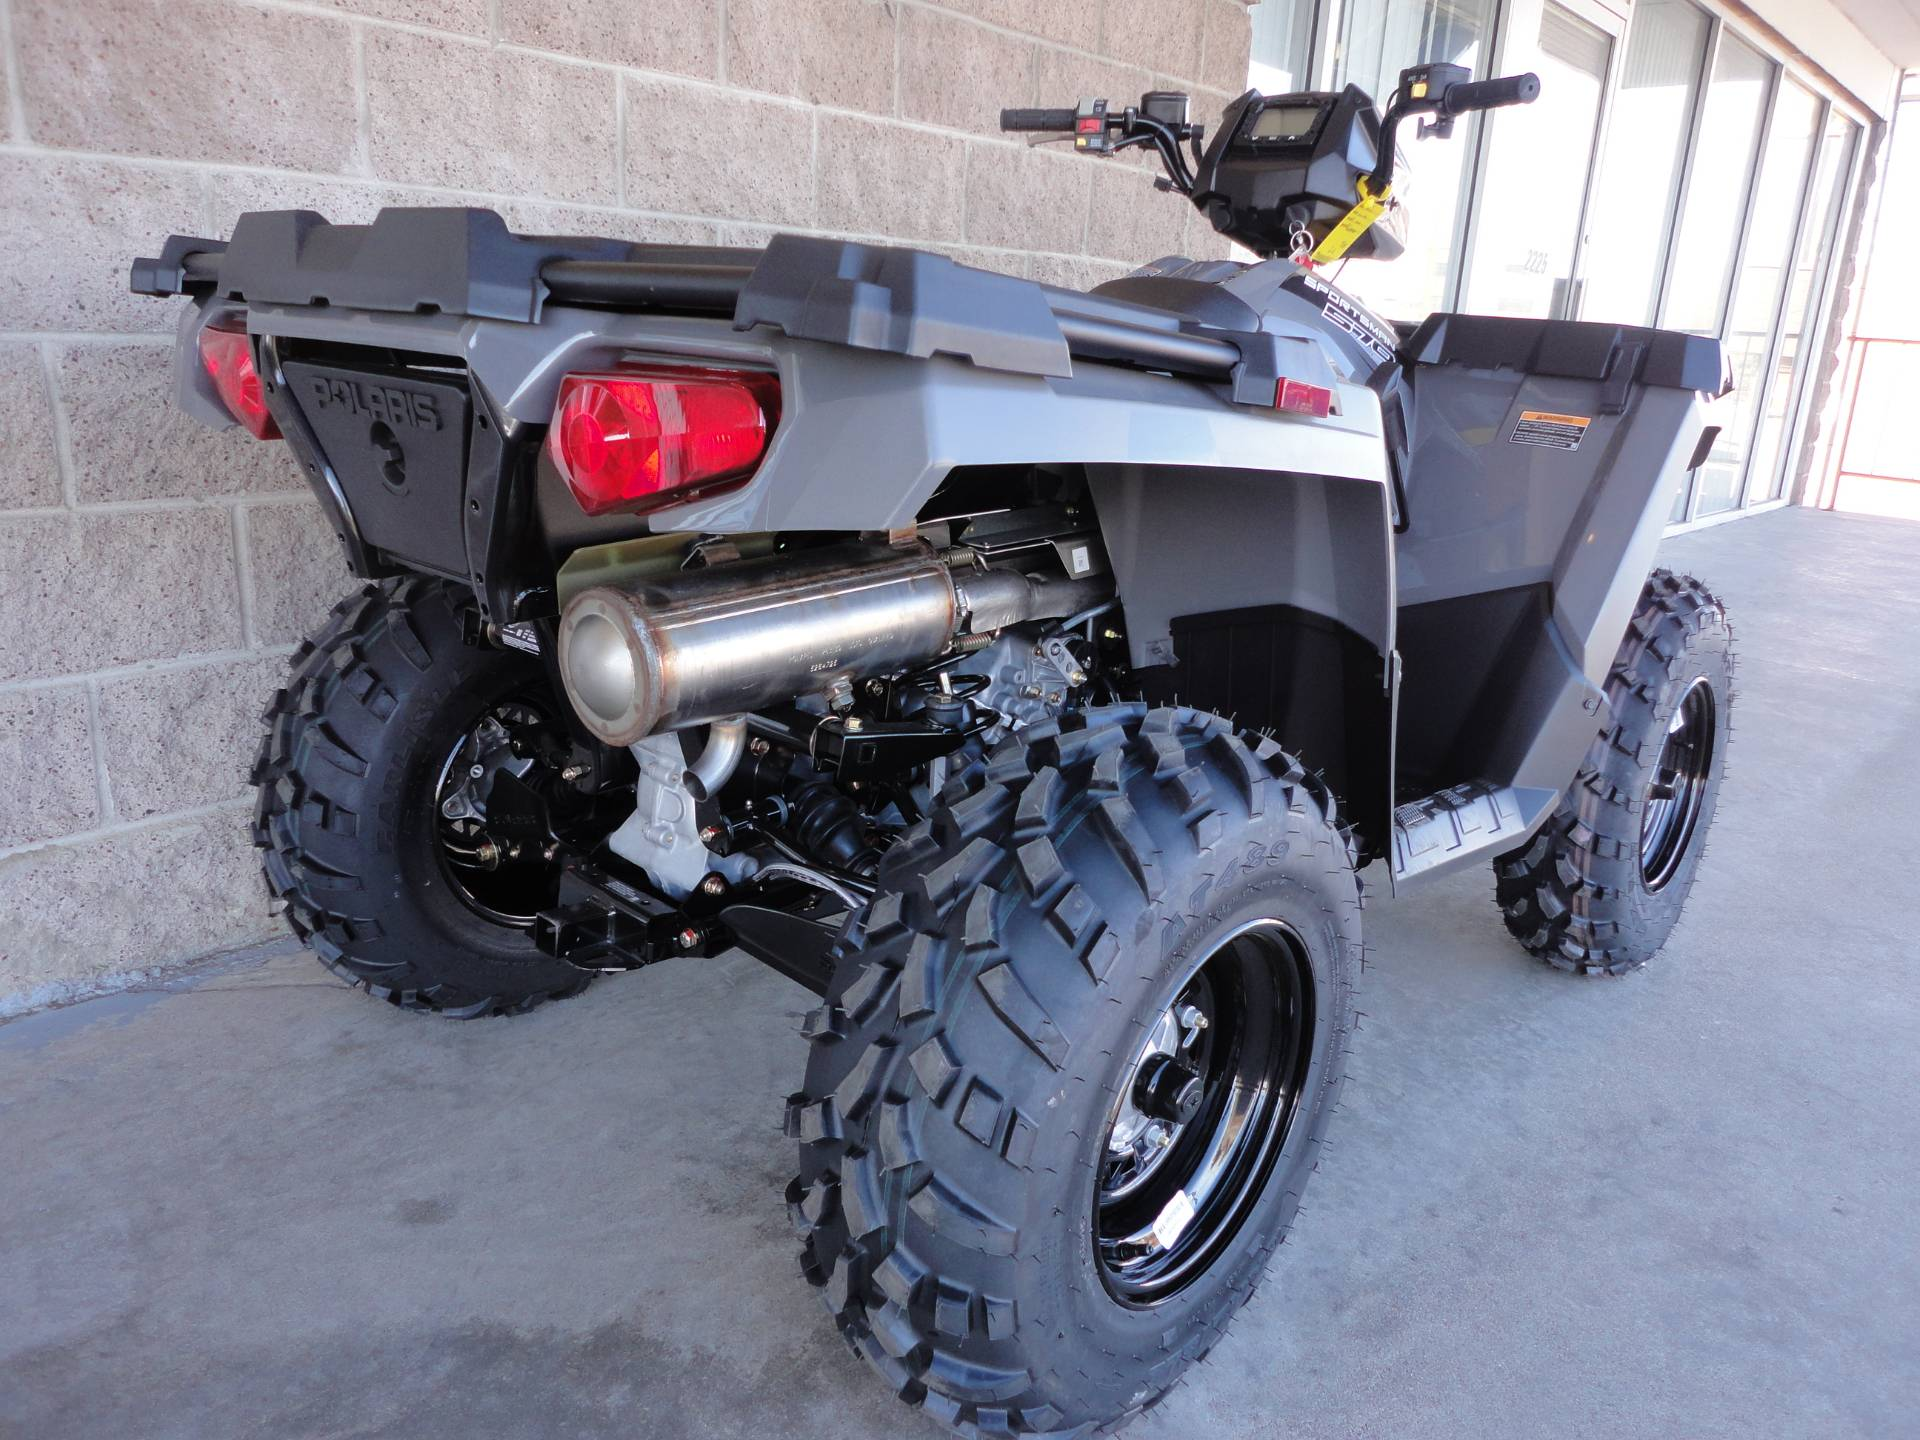 2020 Polaris Sportsman 570 in Denver, Colorado - Photo 3